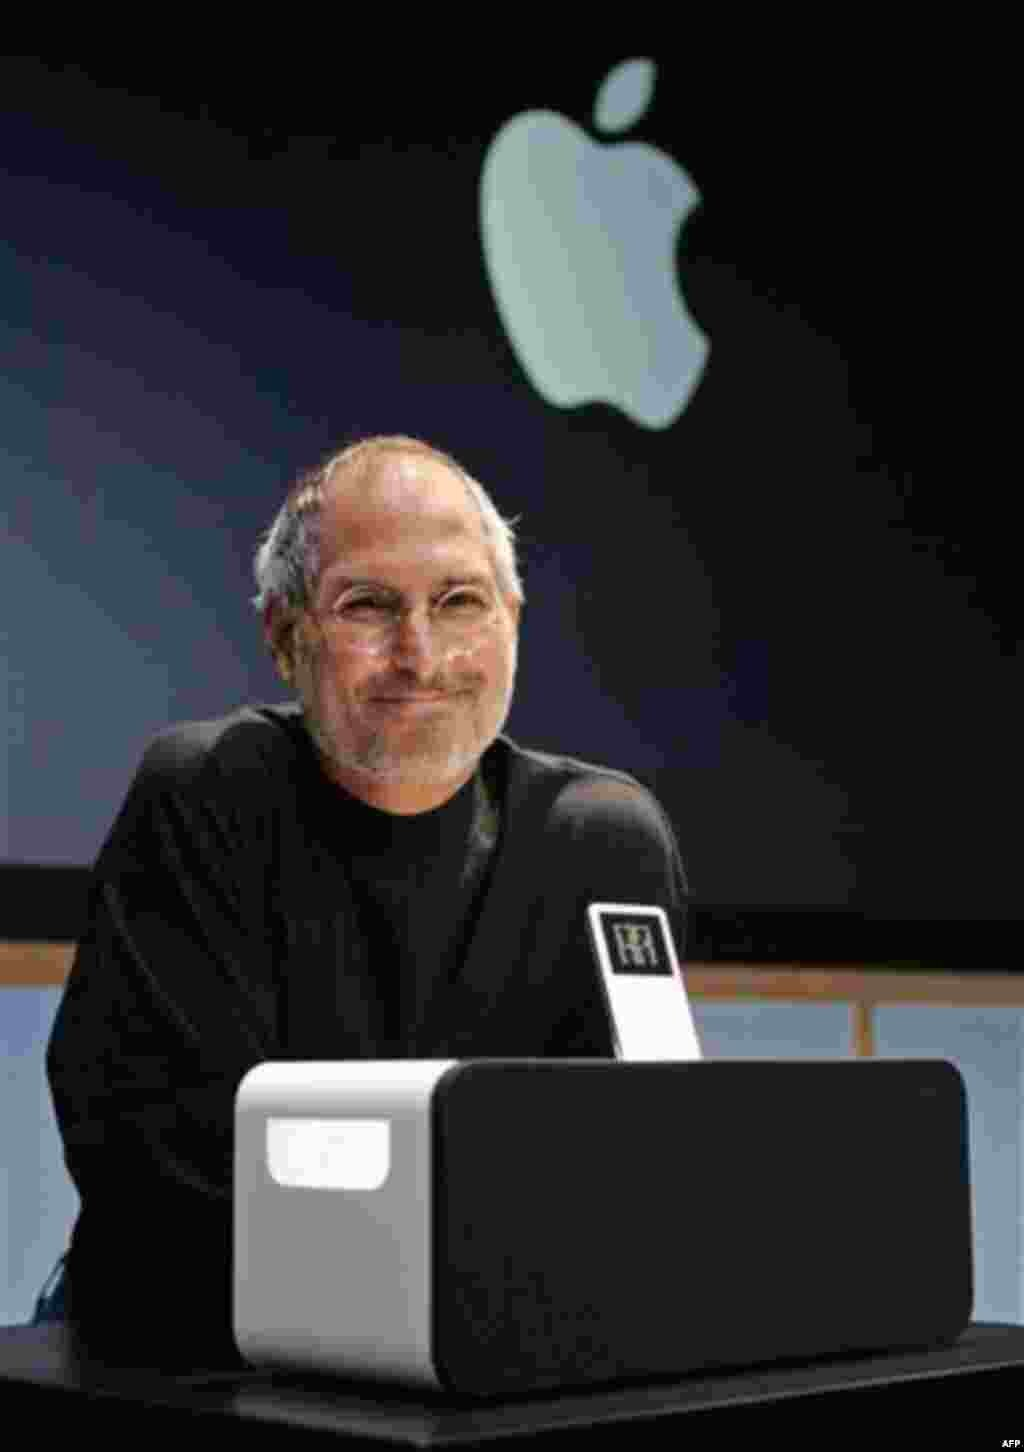 Apple Computer Inc. CEO Steve Jobs smiles next to the new Apple iPod Hi-Fi speaker system for its iPod player at an unveiling at Apple headquarters in Cupertino, Calif., Tuesday, Feb. 28, 2006. (AP Photo/Paul Sakuma)